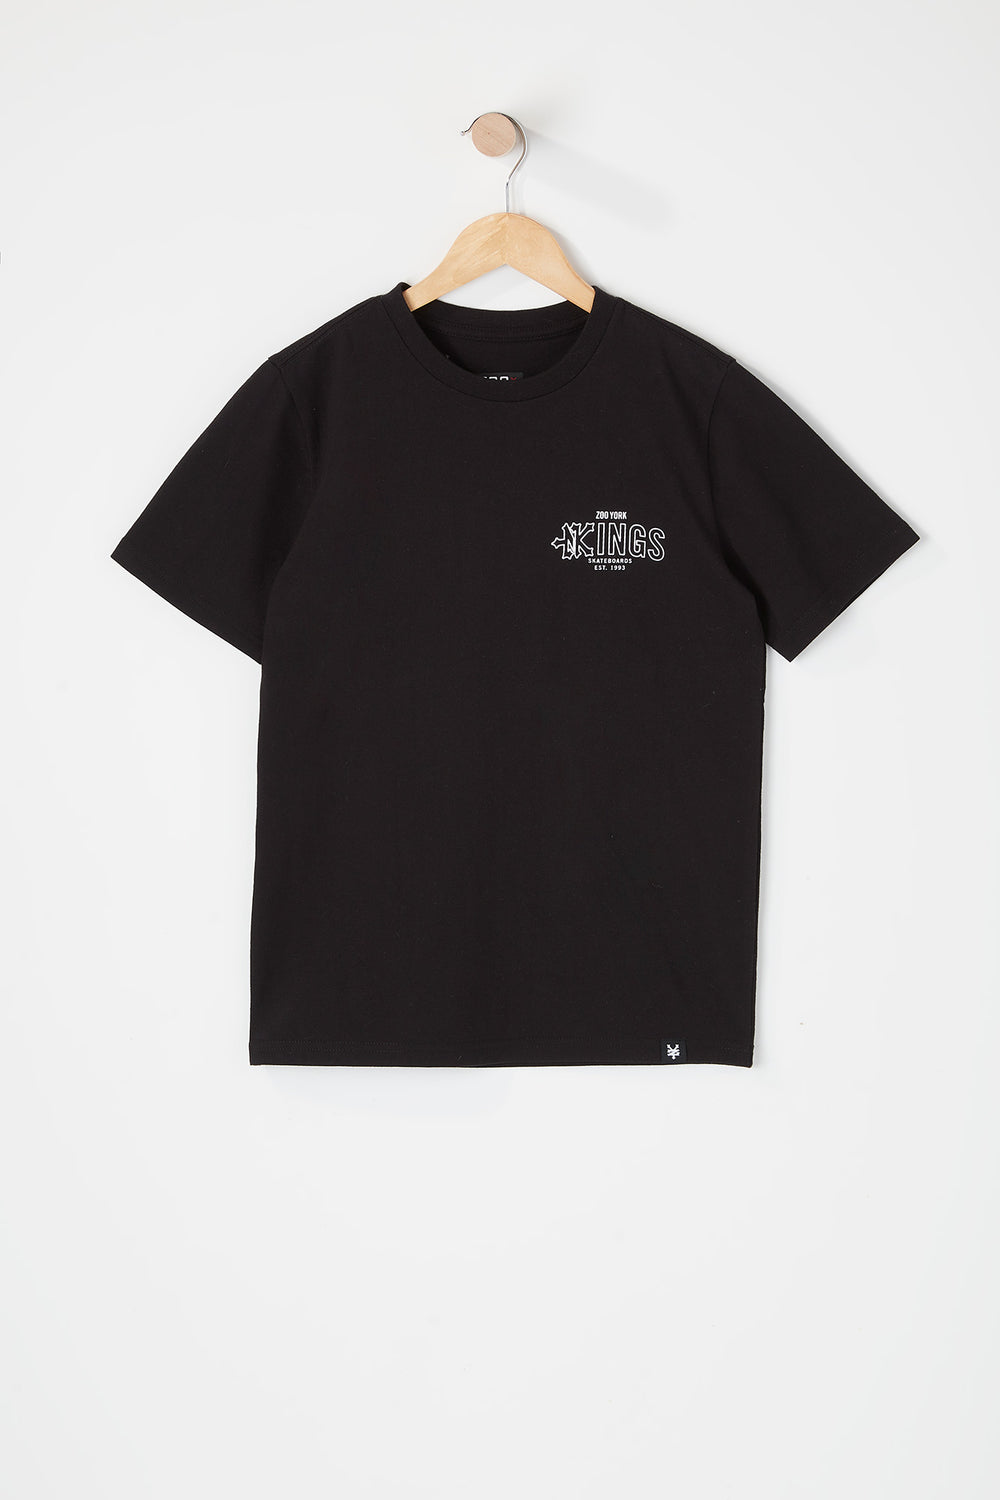 Zoo York Youth Kings T-Shirt Black